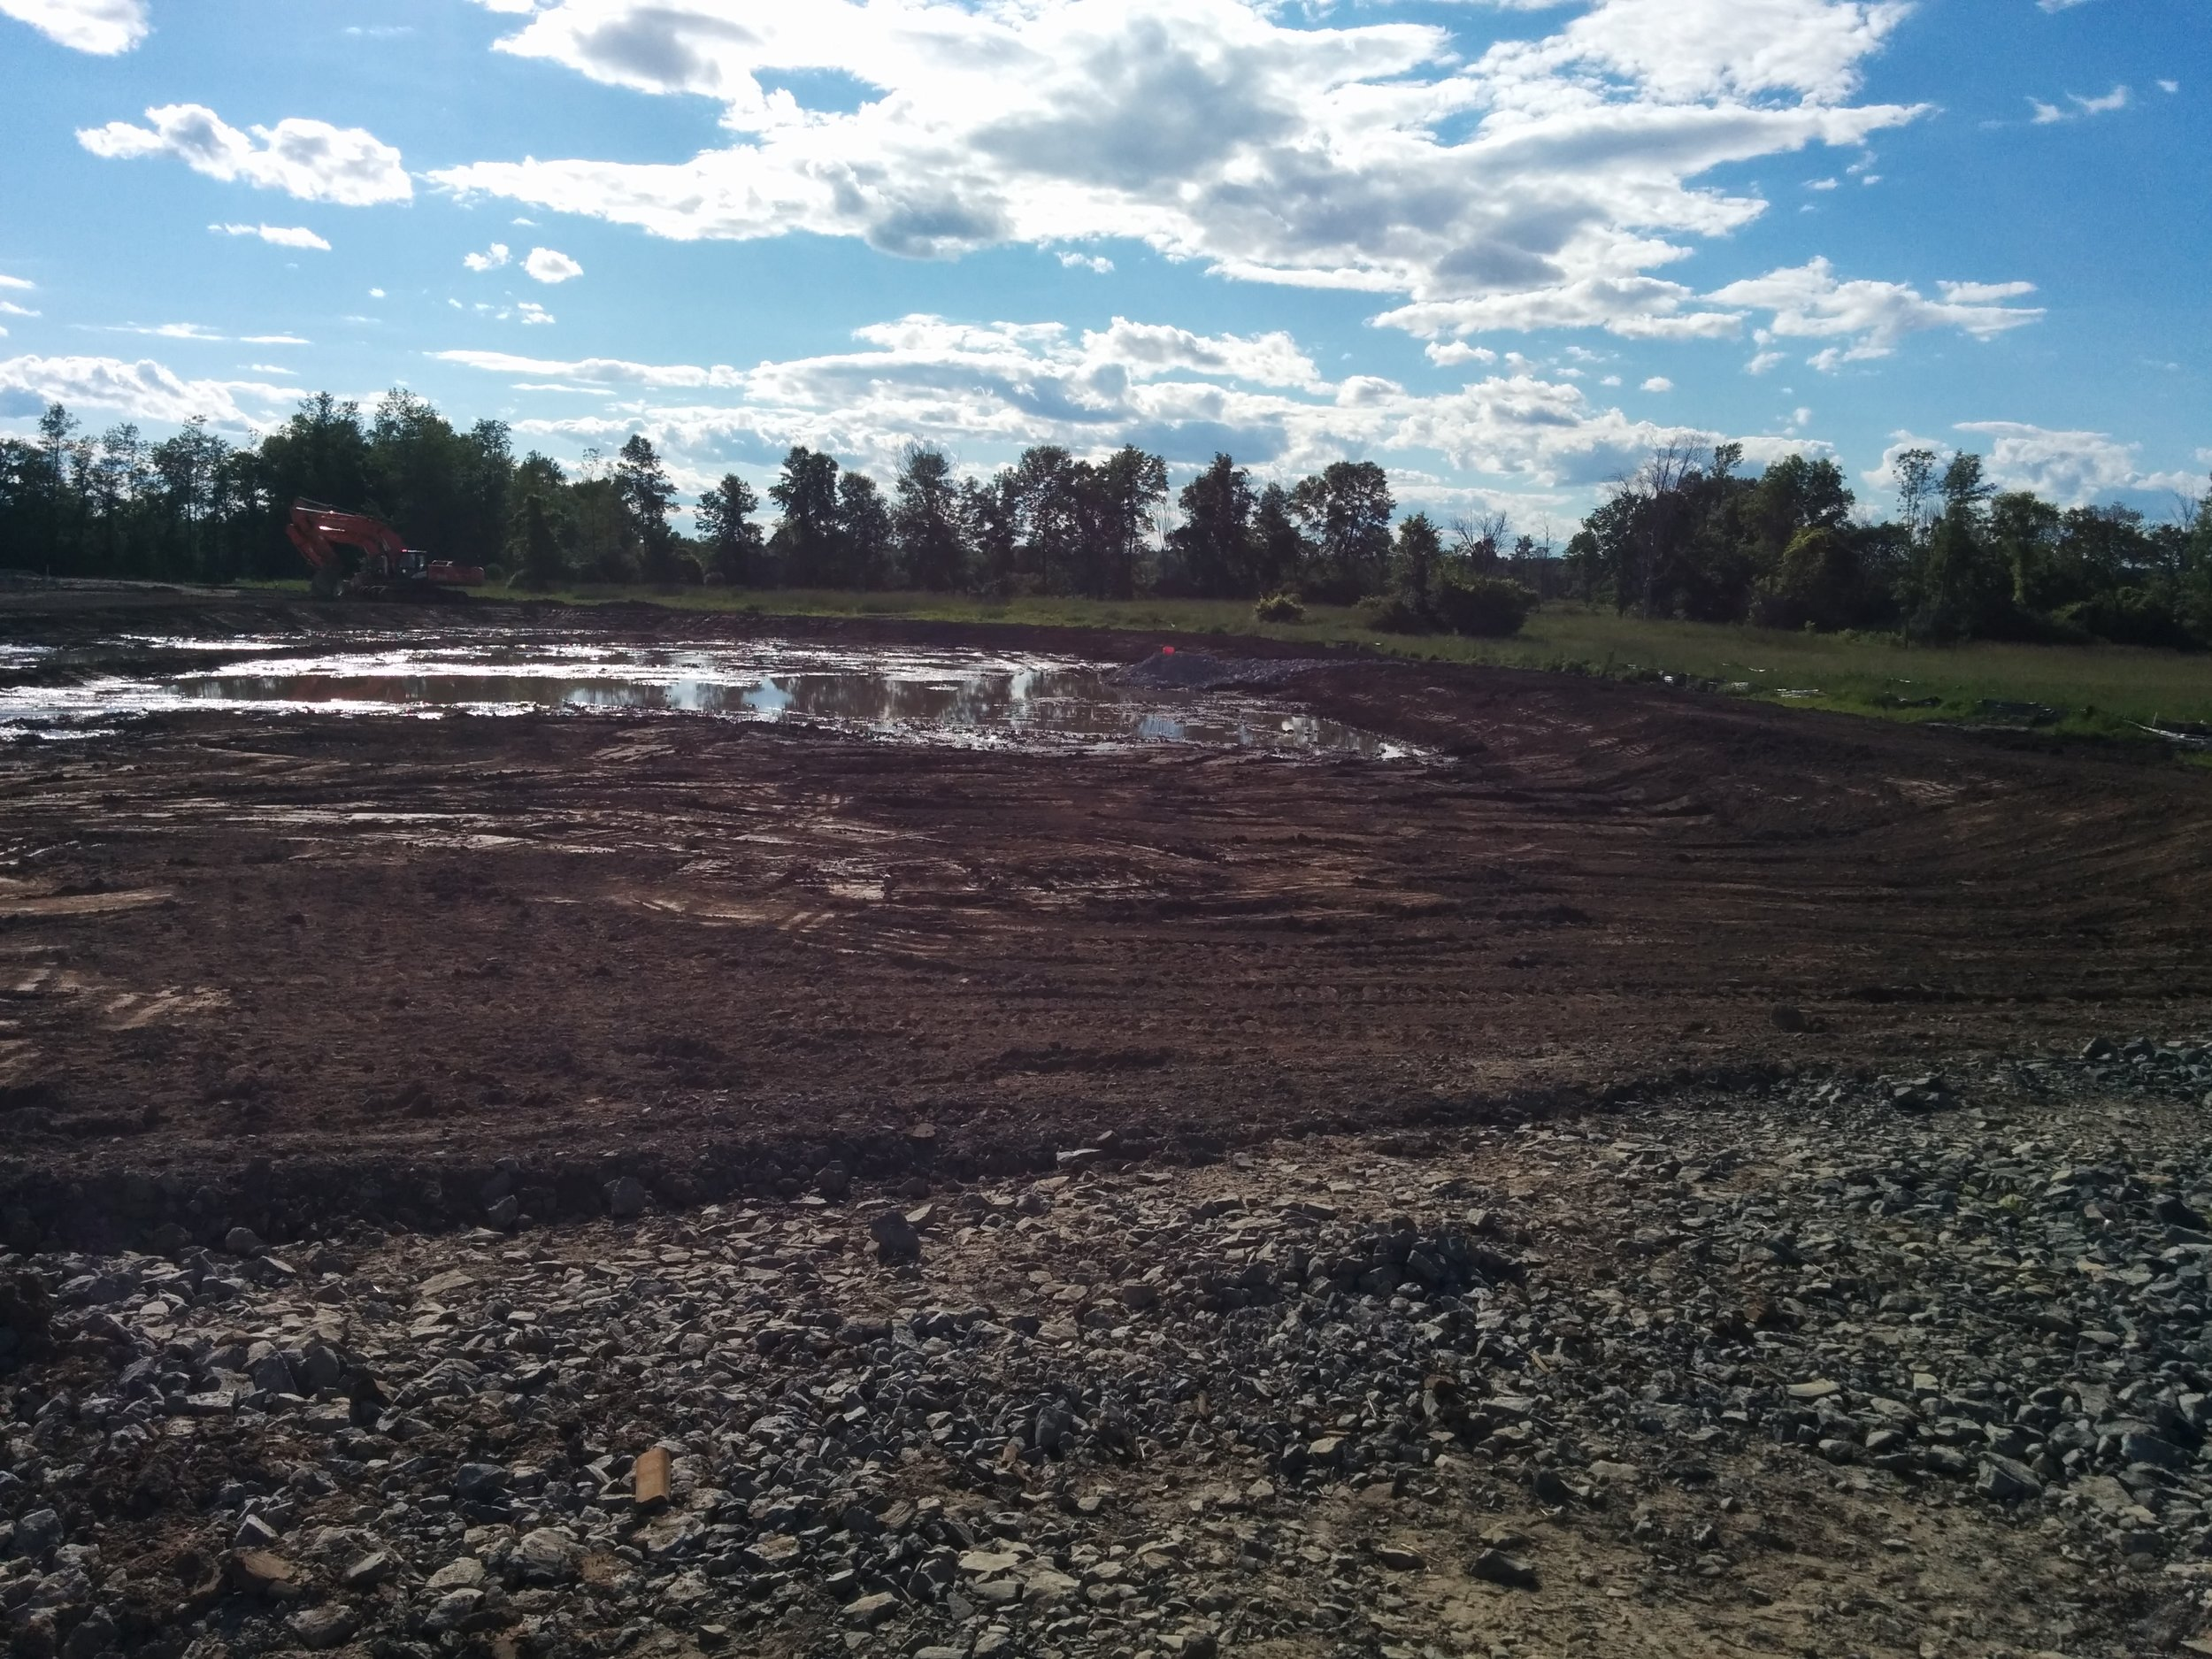 Storm-water management pond, completed excavation.